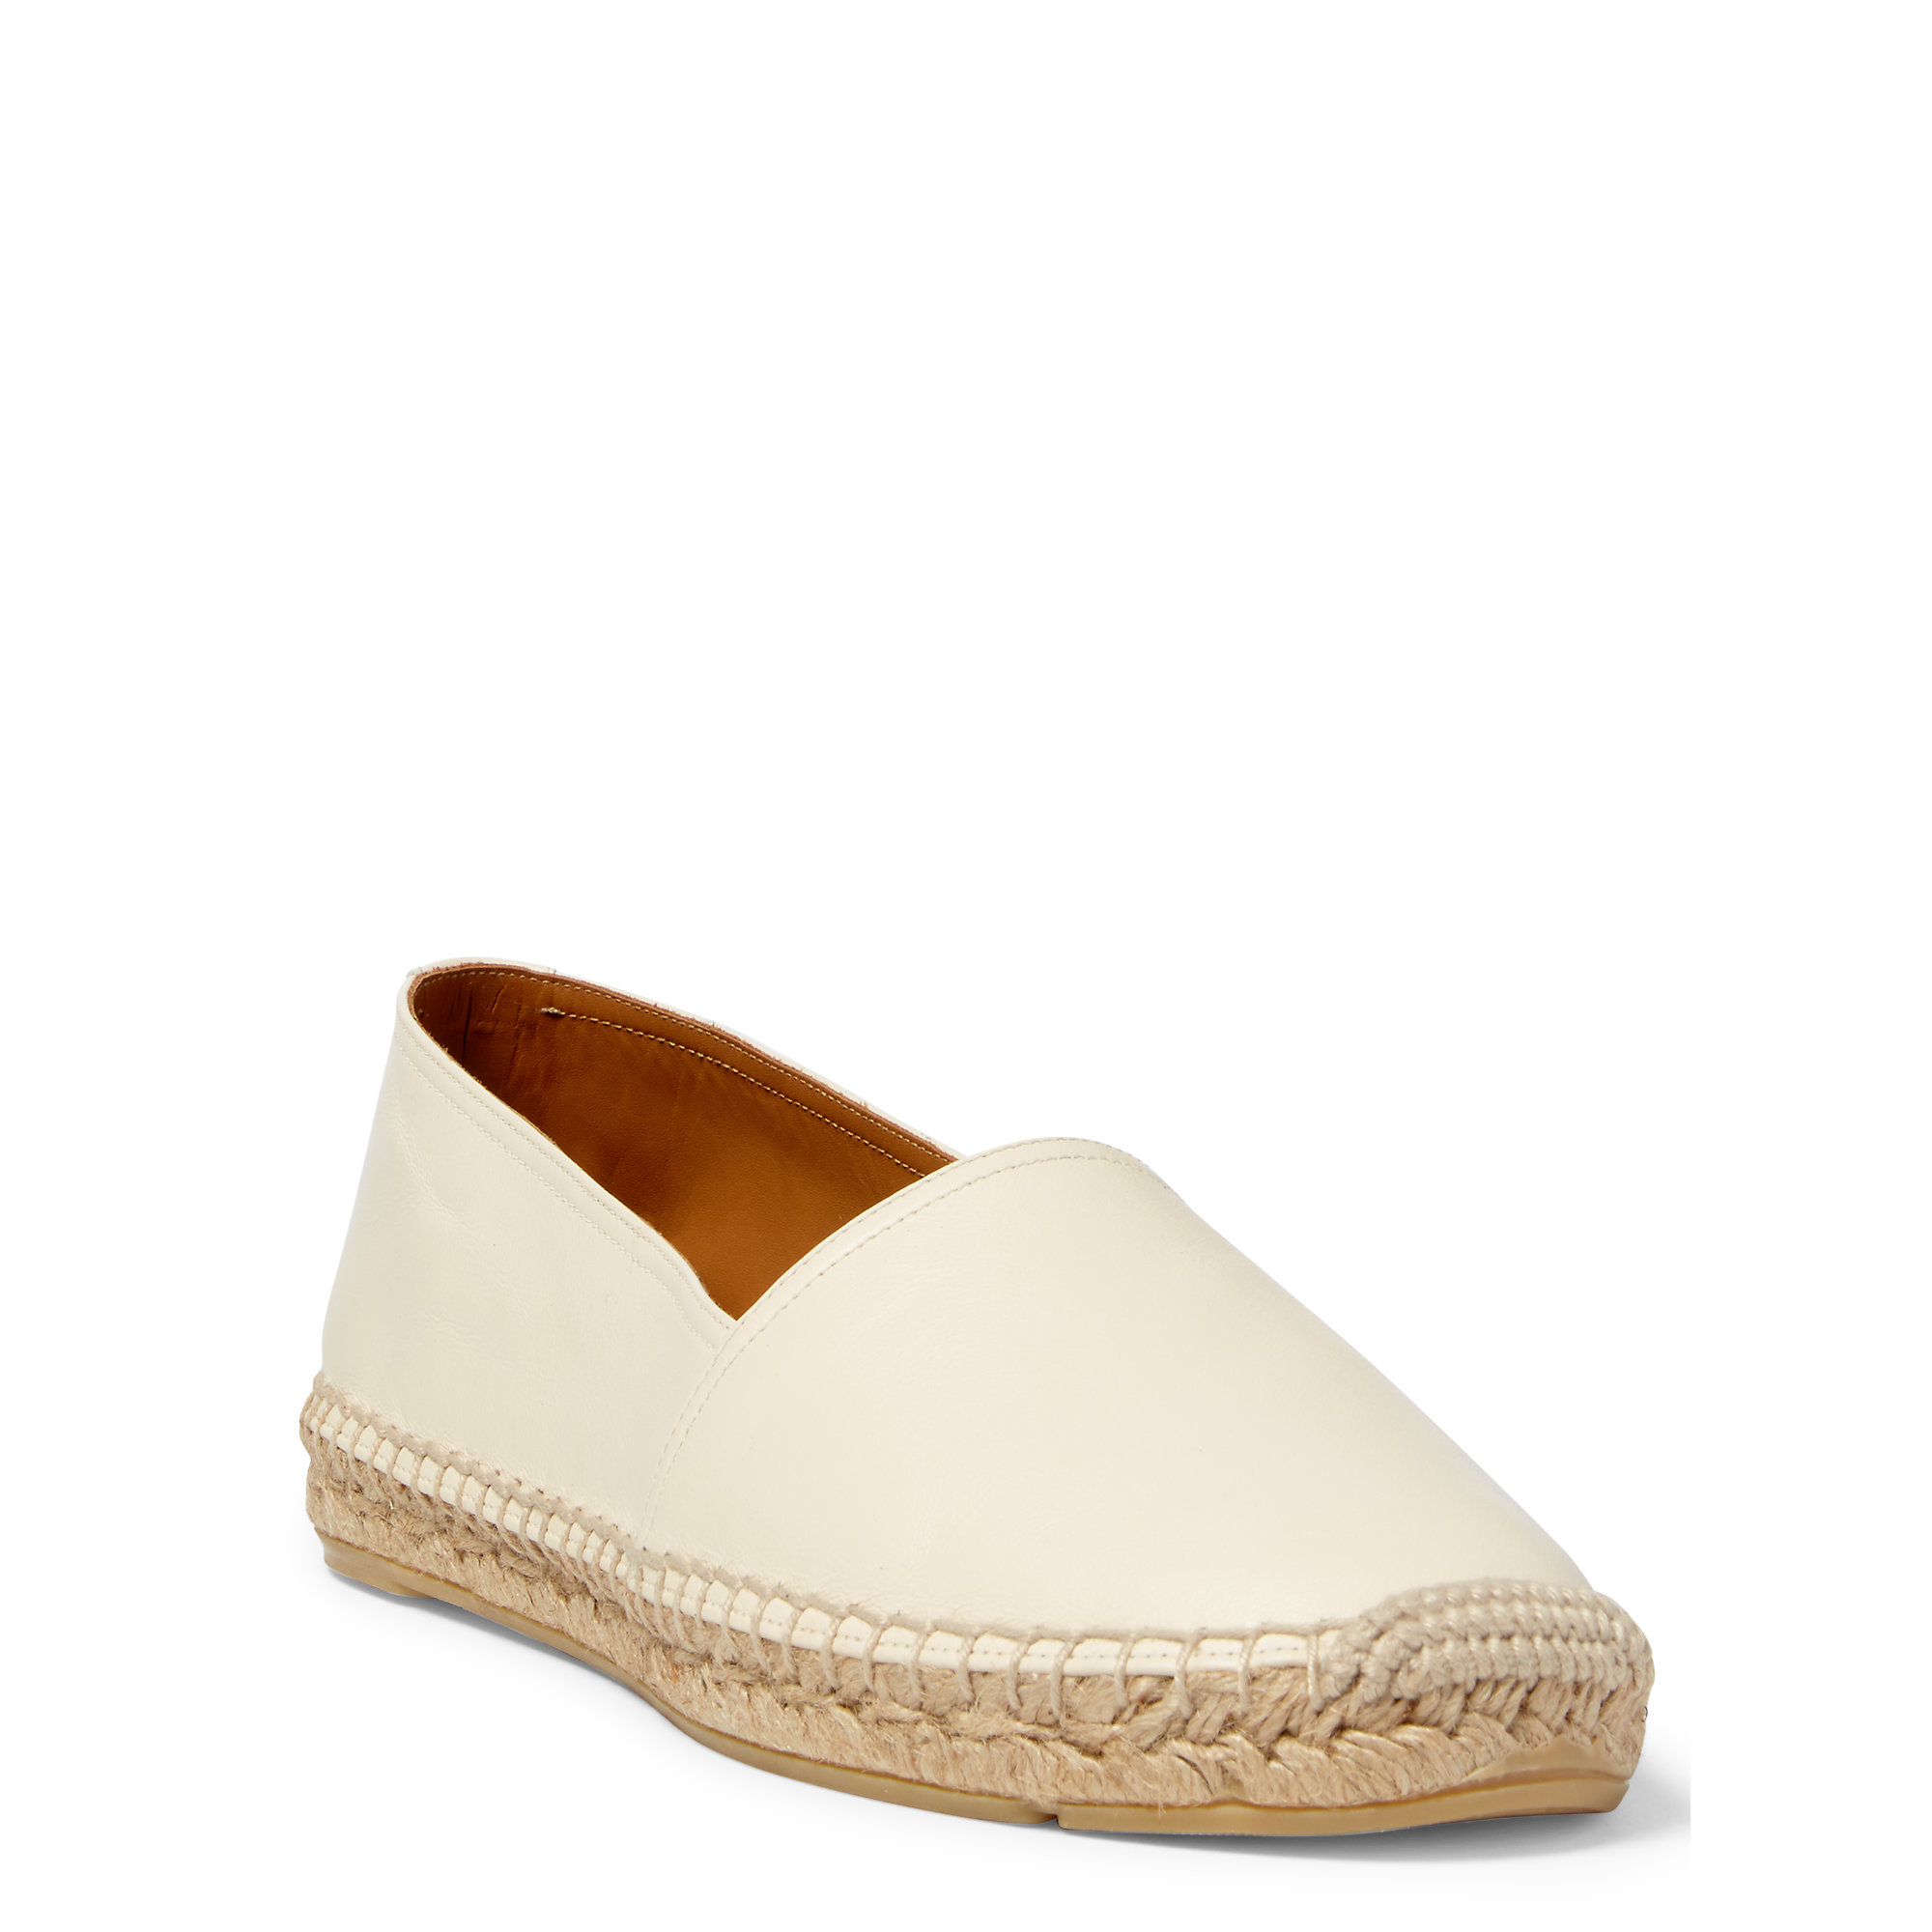 Lyst - Polo Ralph Lauren Jo Leather-raffia Espadrille in Natural 040e0a06740c